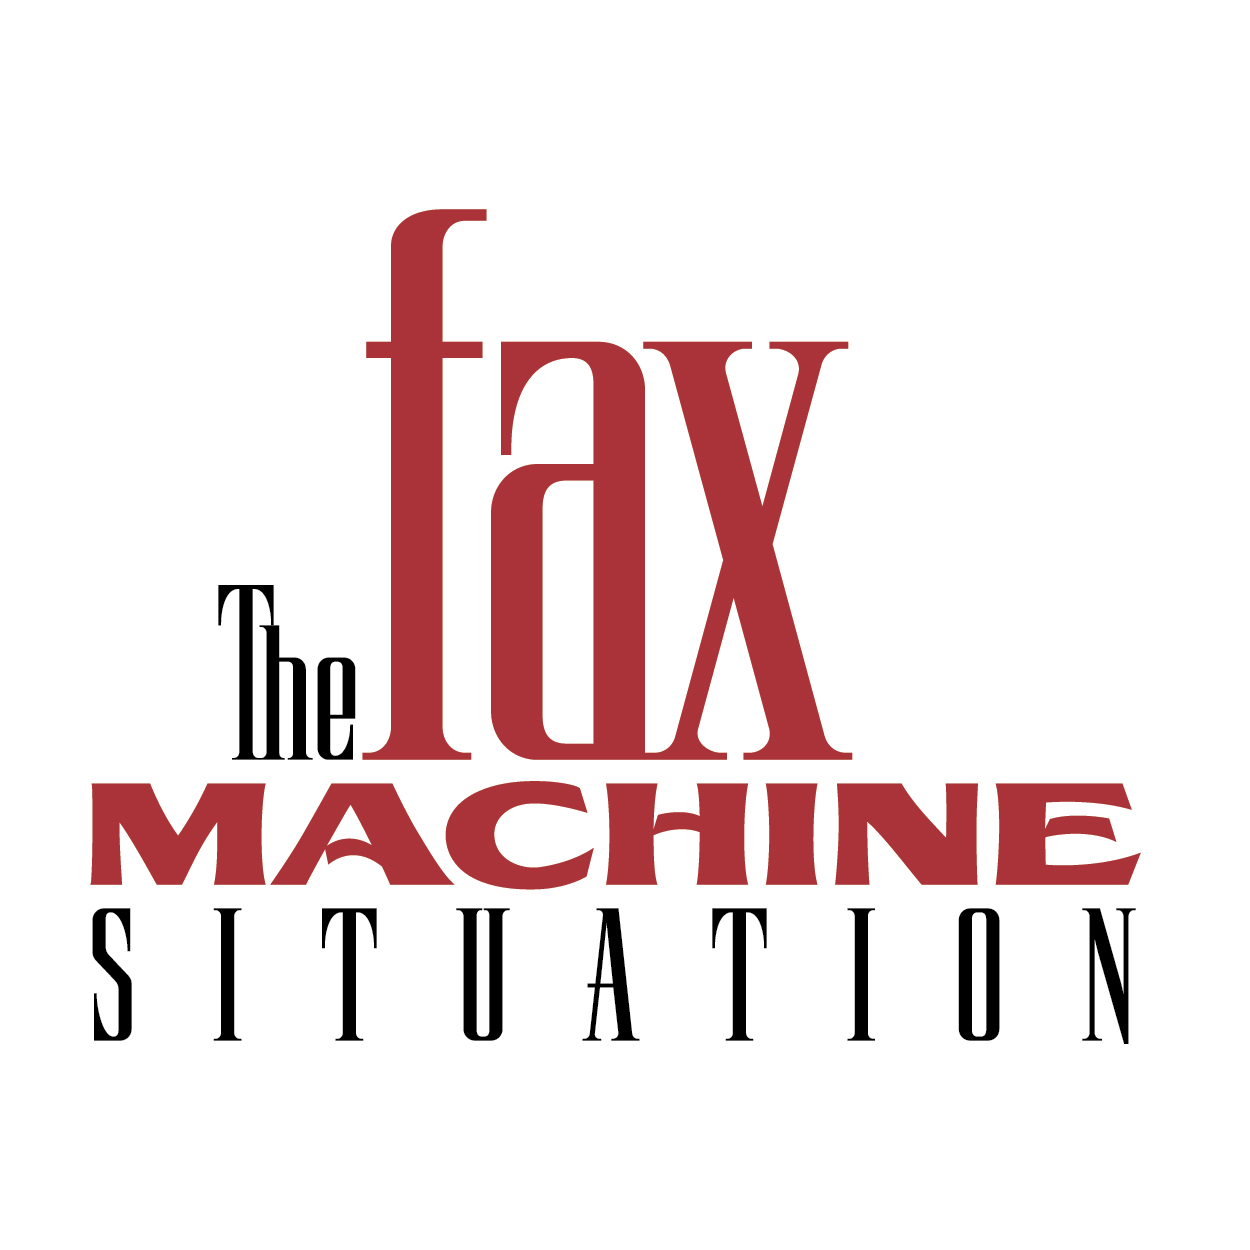 The Fax Machine Situation